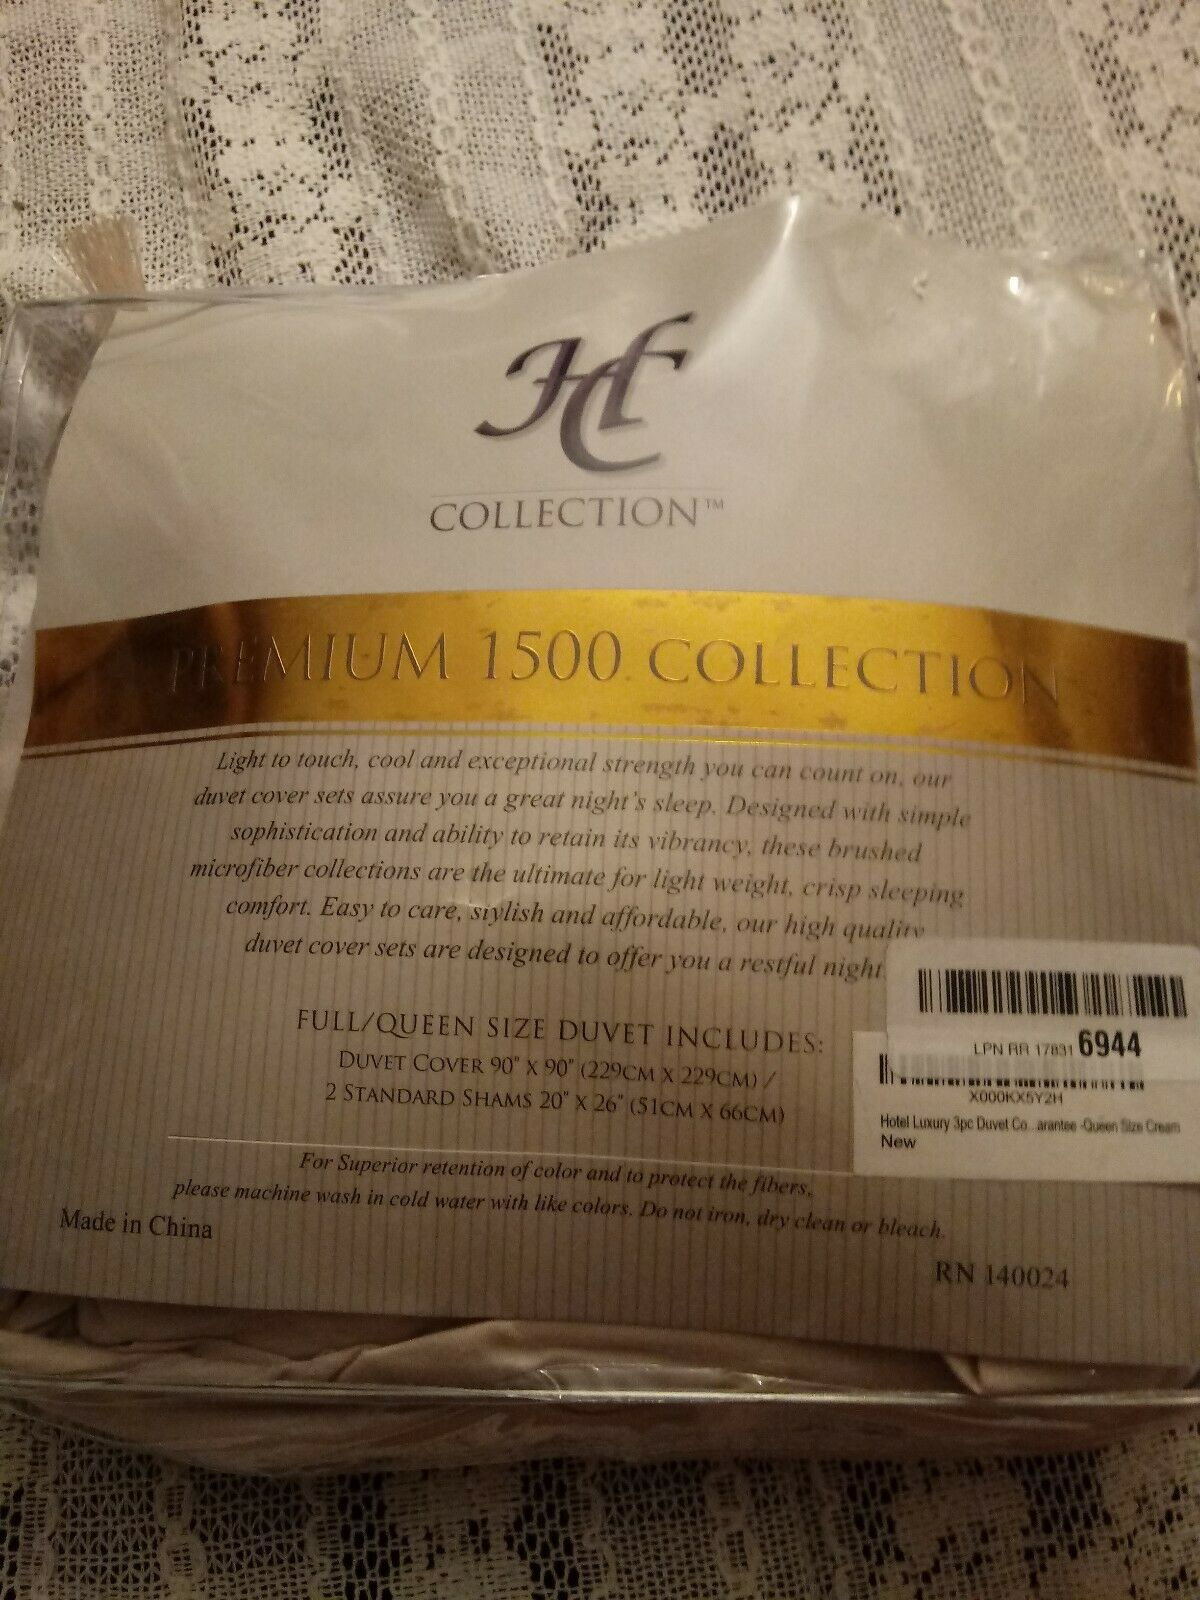 HC Collection Premium 1500 Collection Full Queen Duvet Cover 3 piece Set-Tan wow